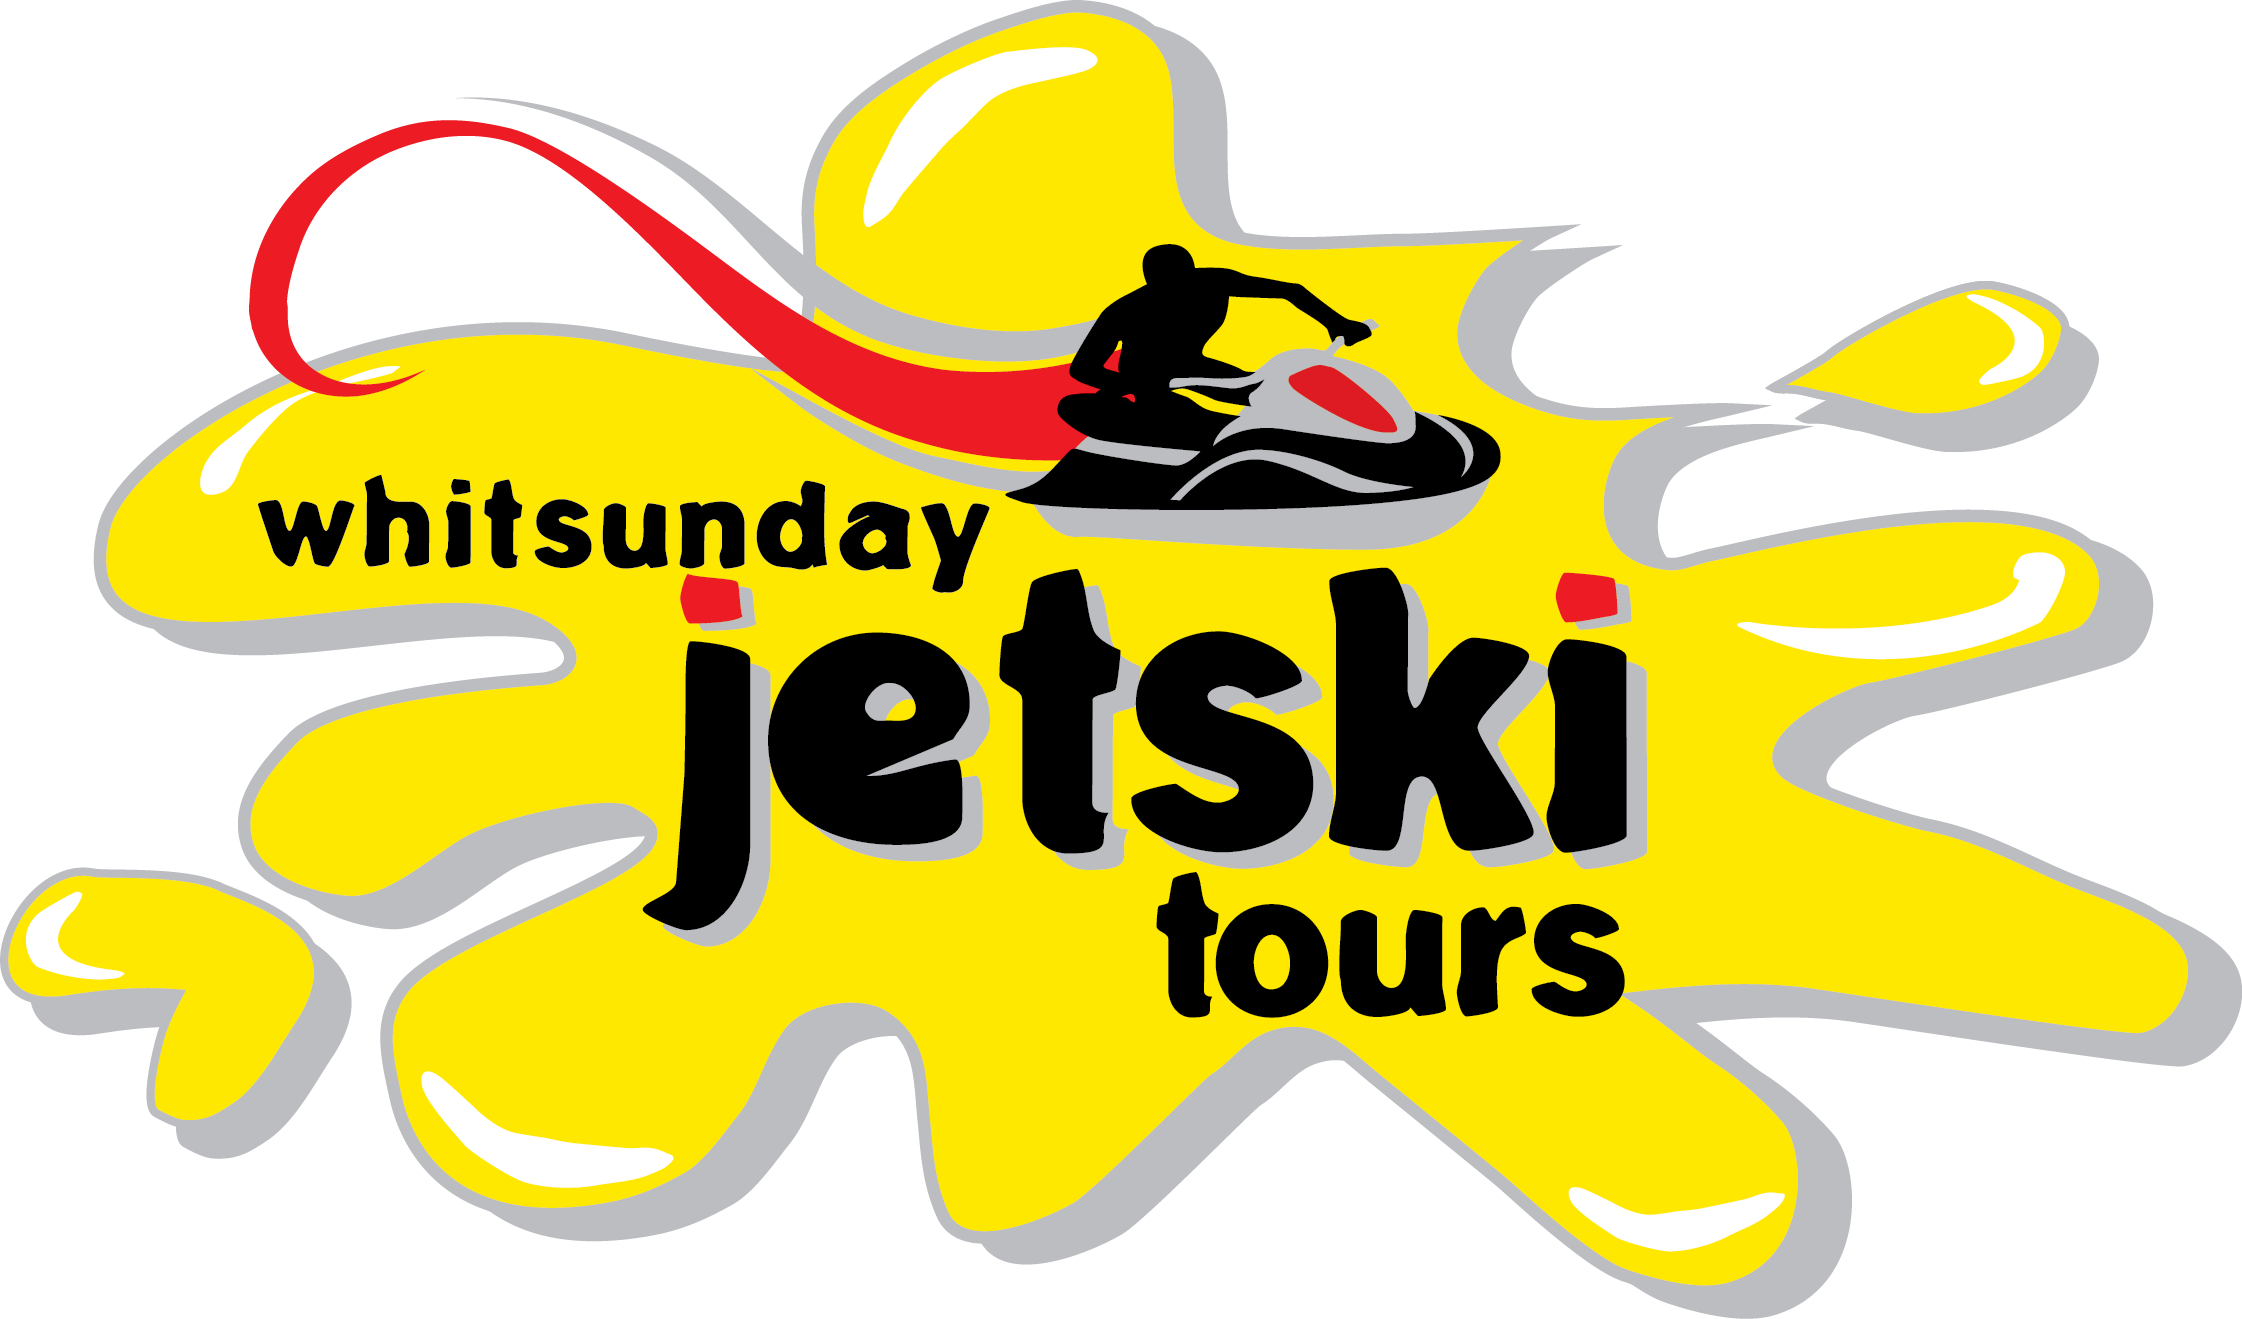 2019.03.08 New logo Whitsunday Jetski tours